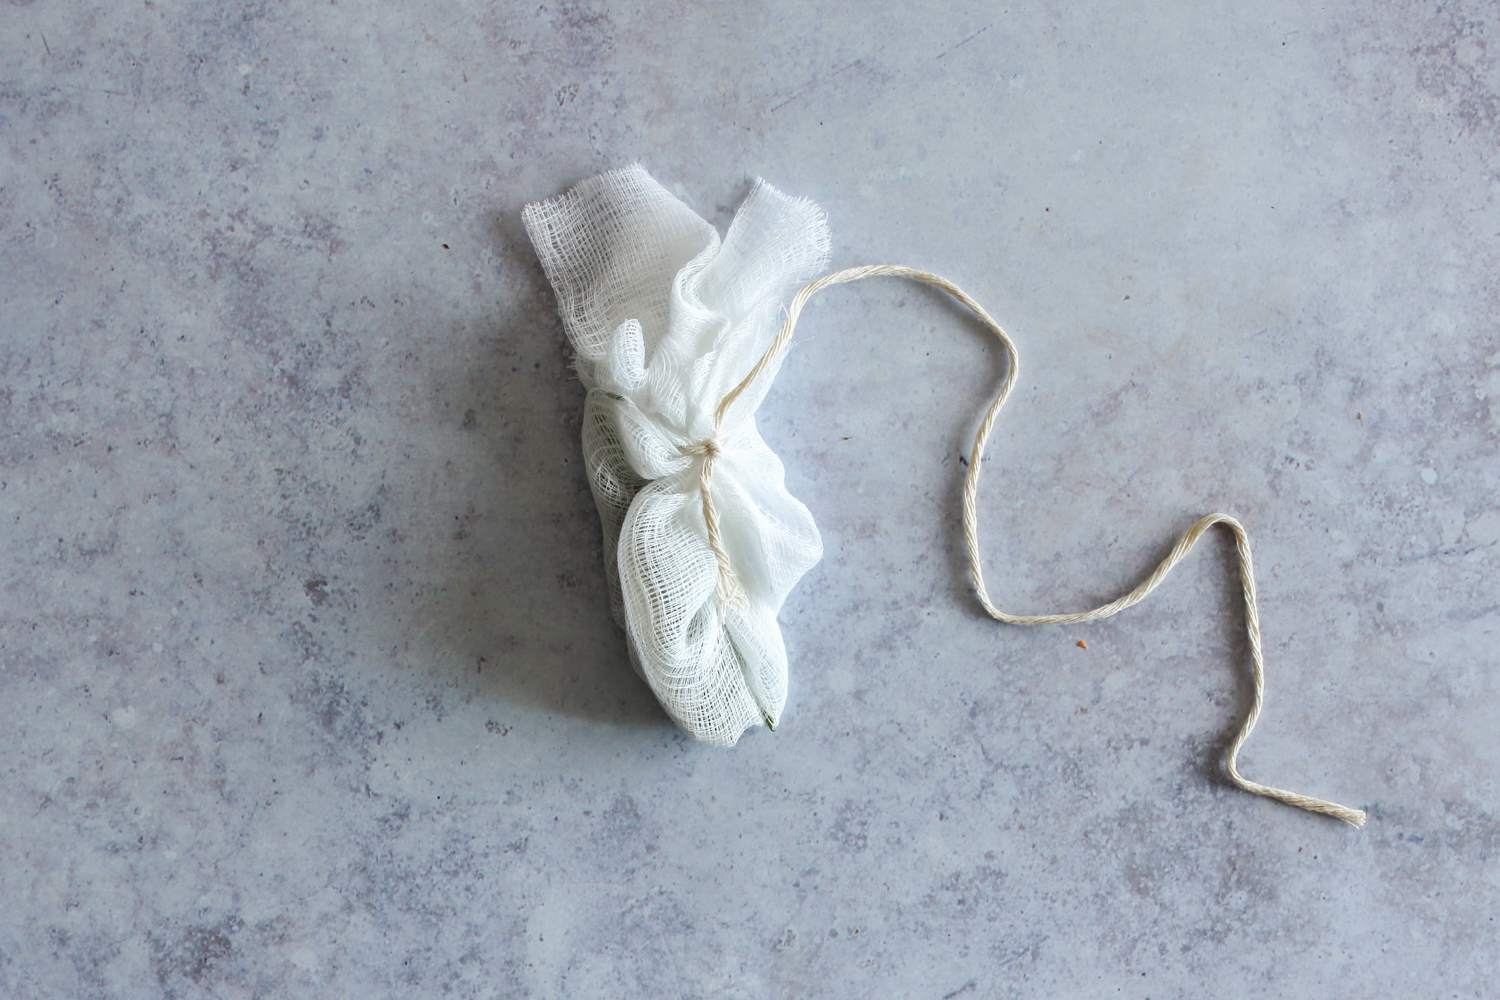 Spice sachet tied with string